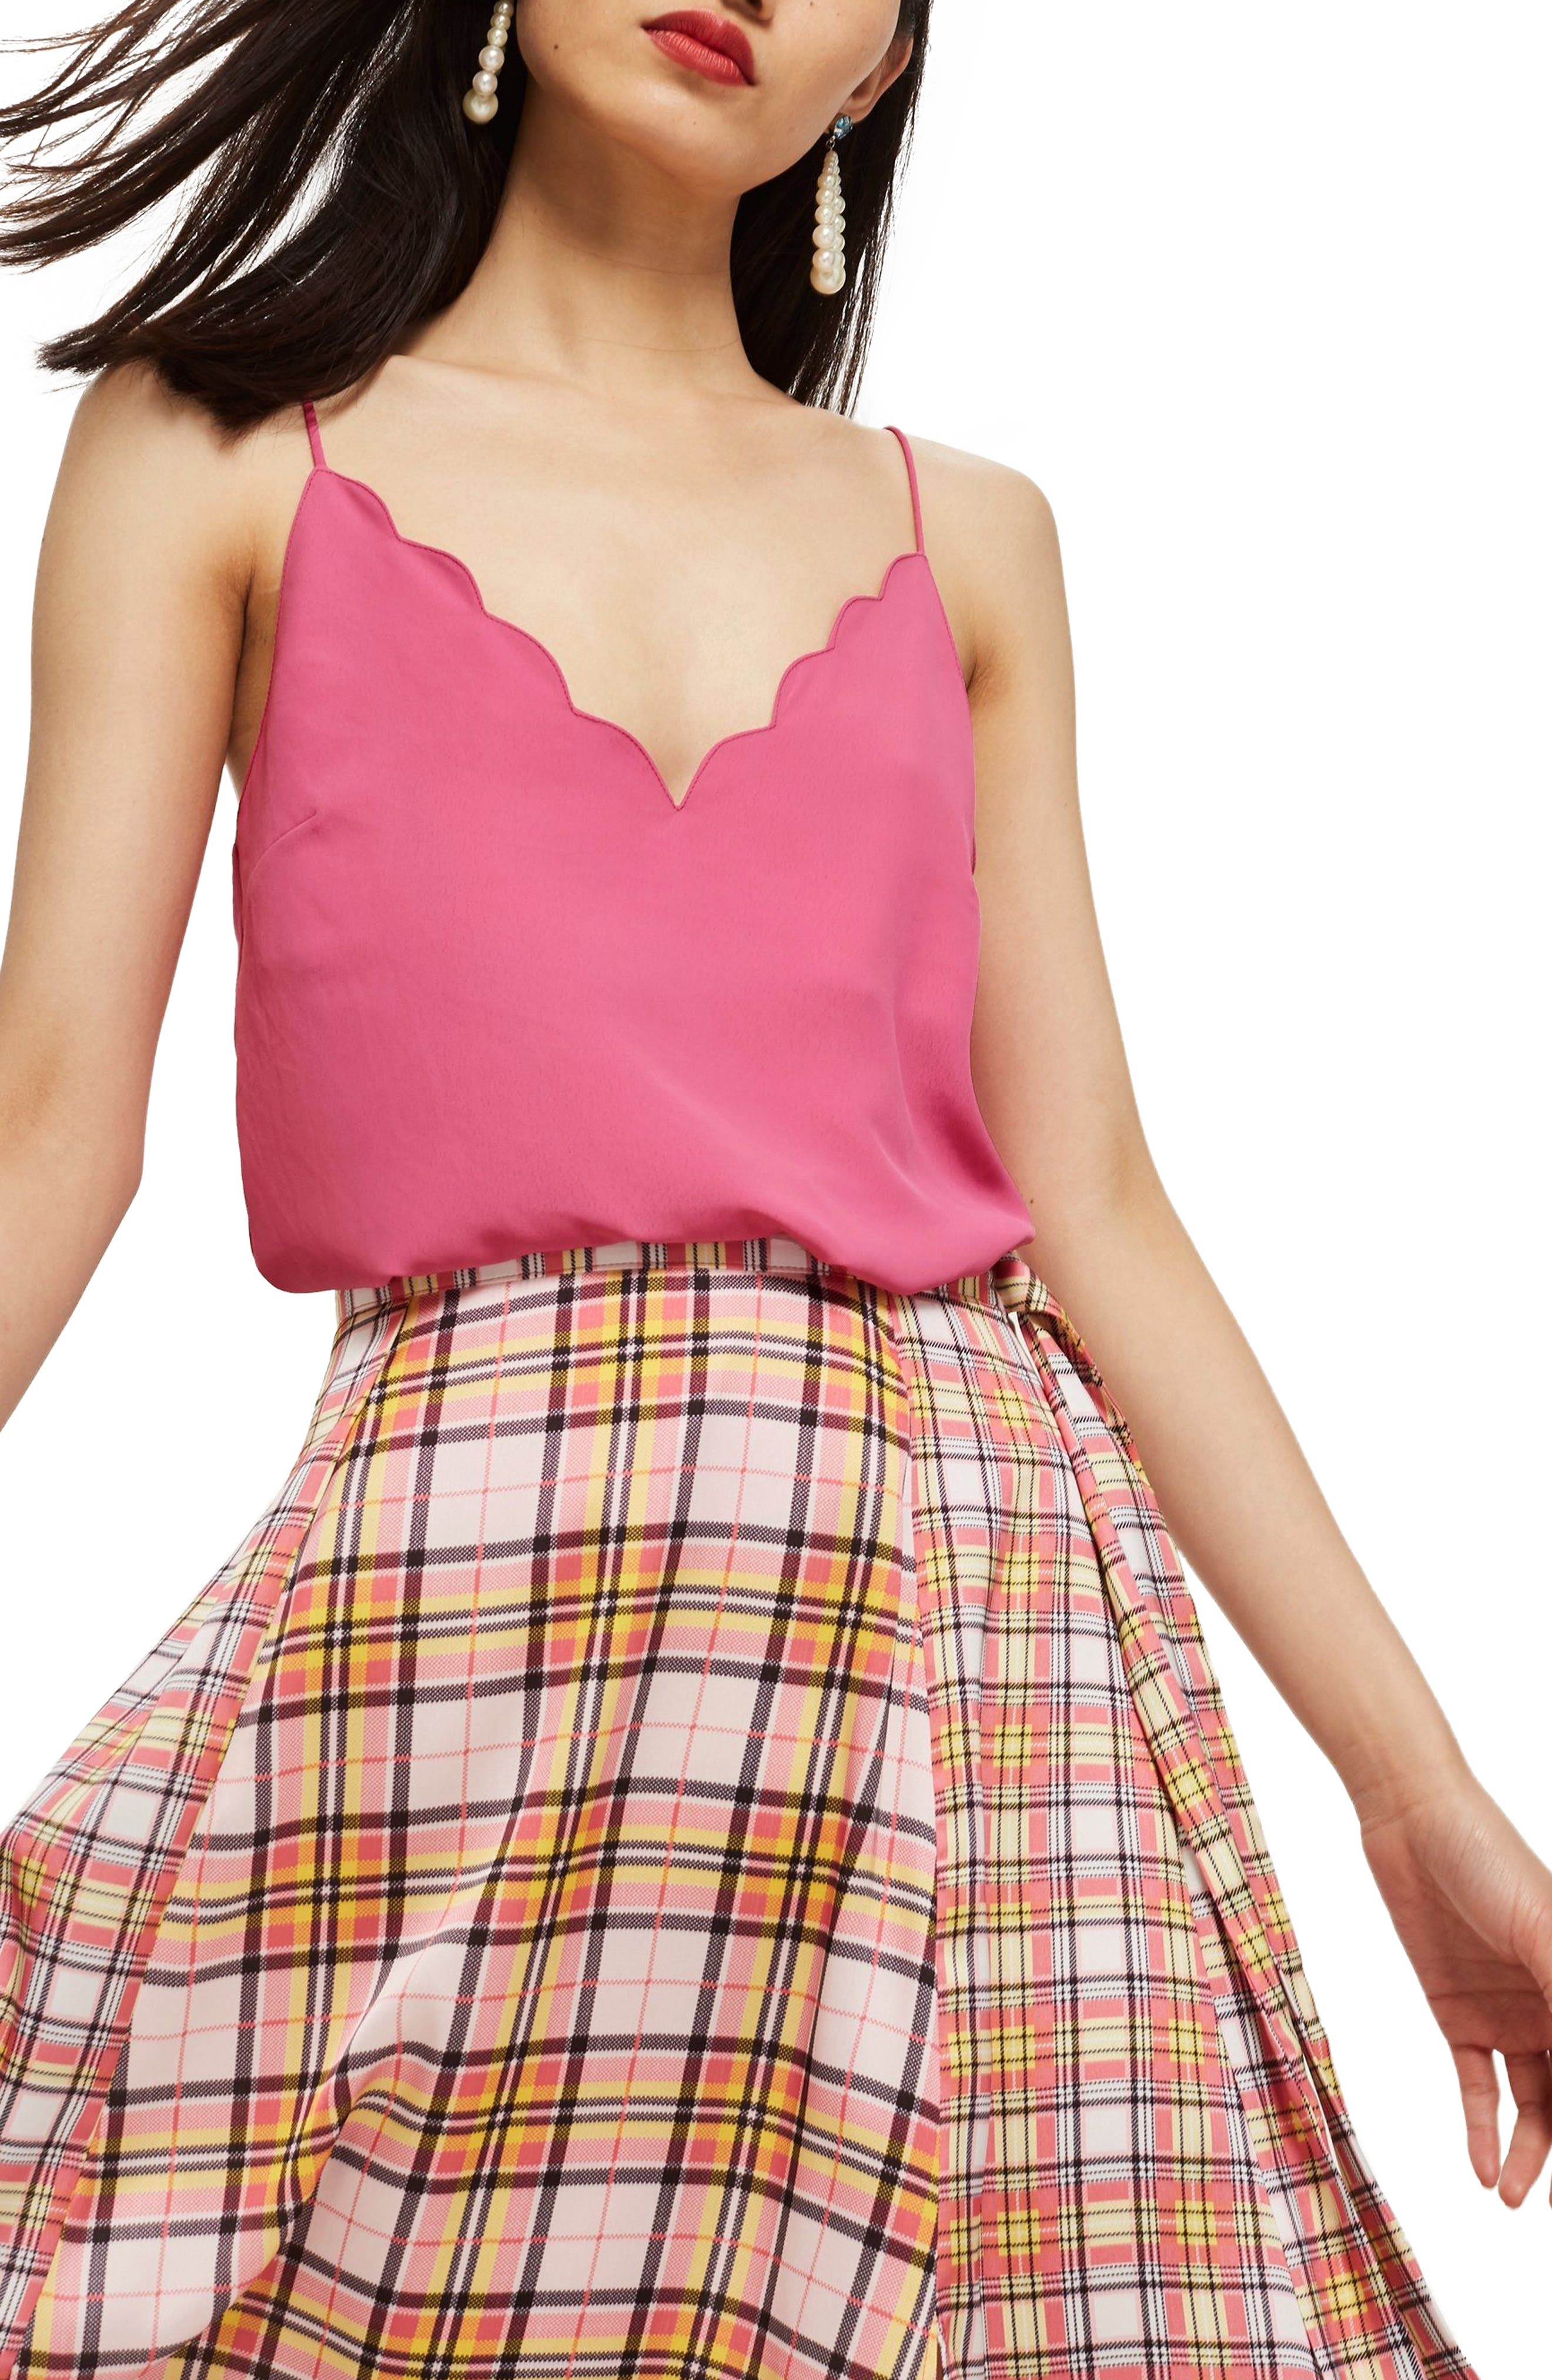 Scallop Camisole,                             Main thumbnail 1, color,                             Pink